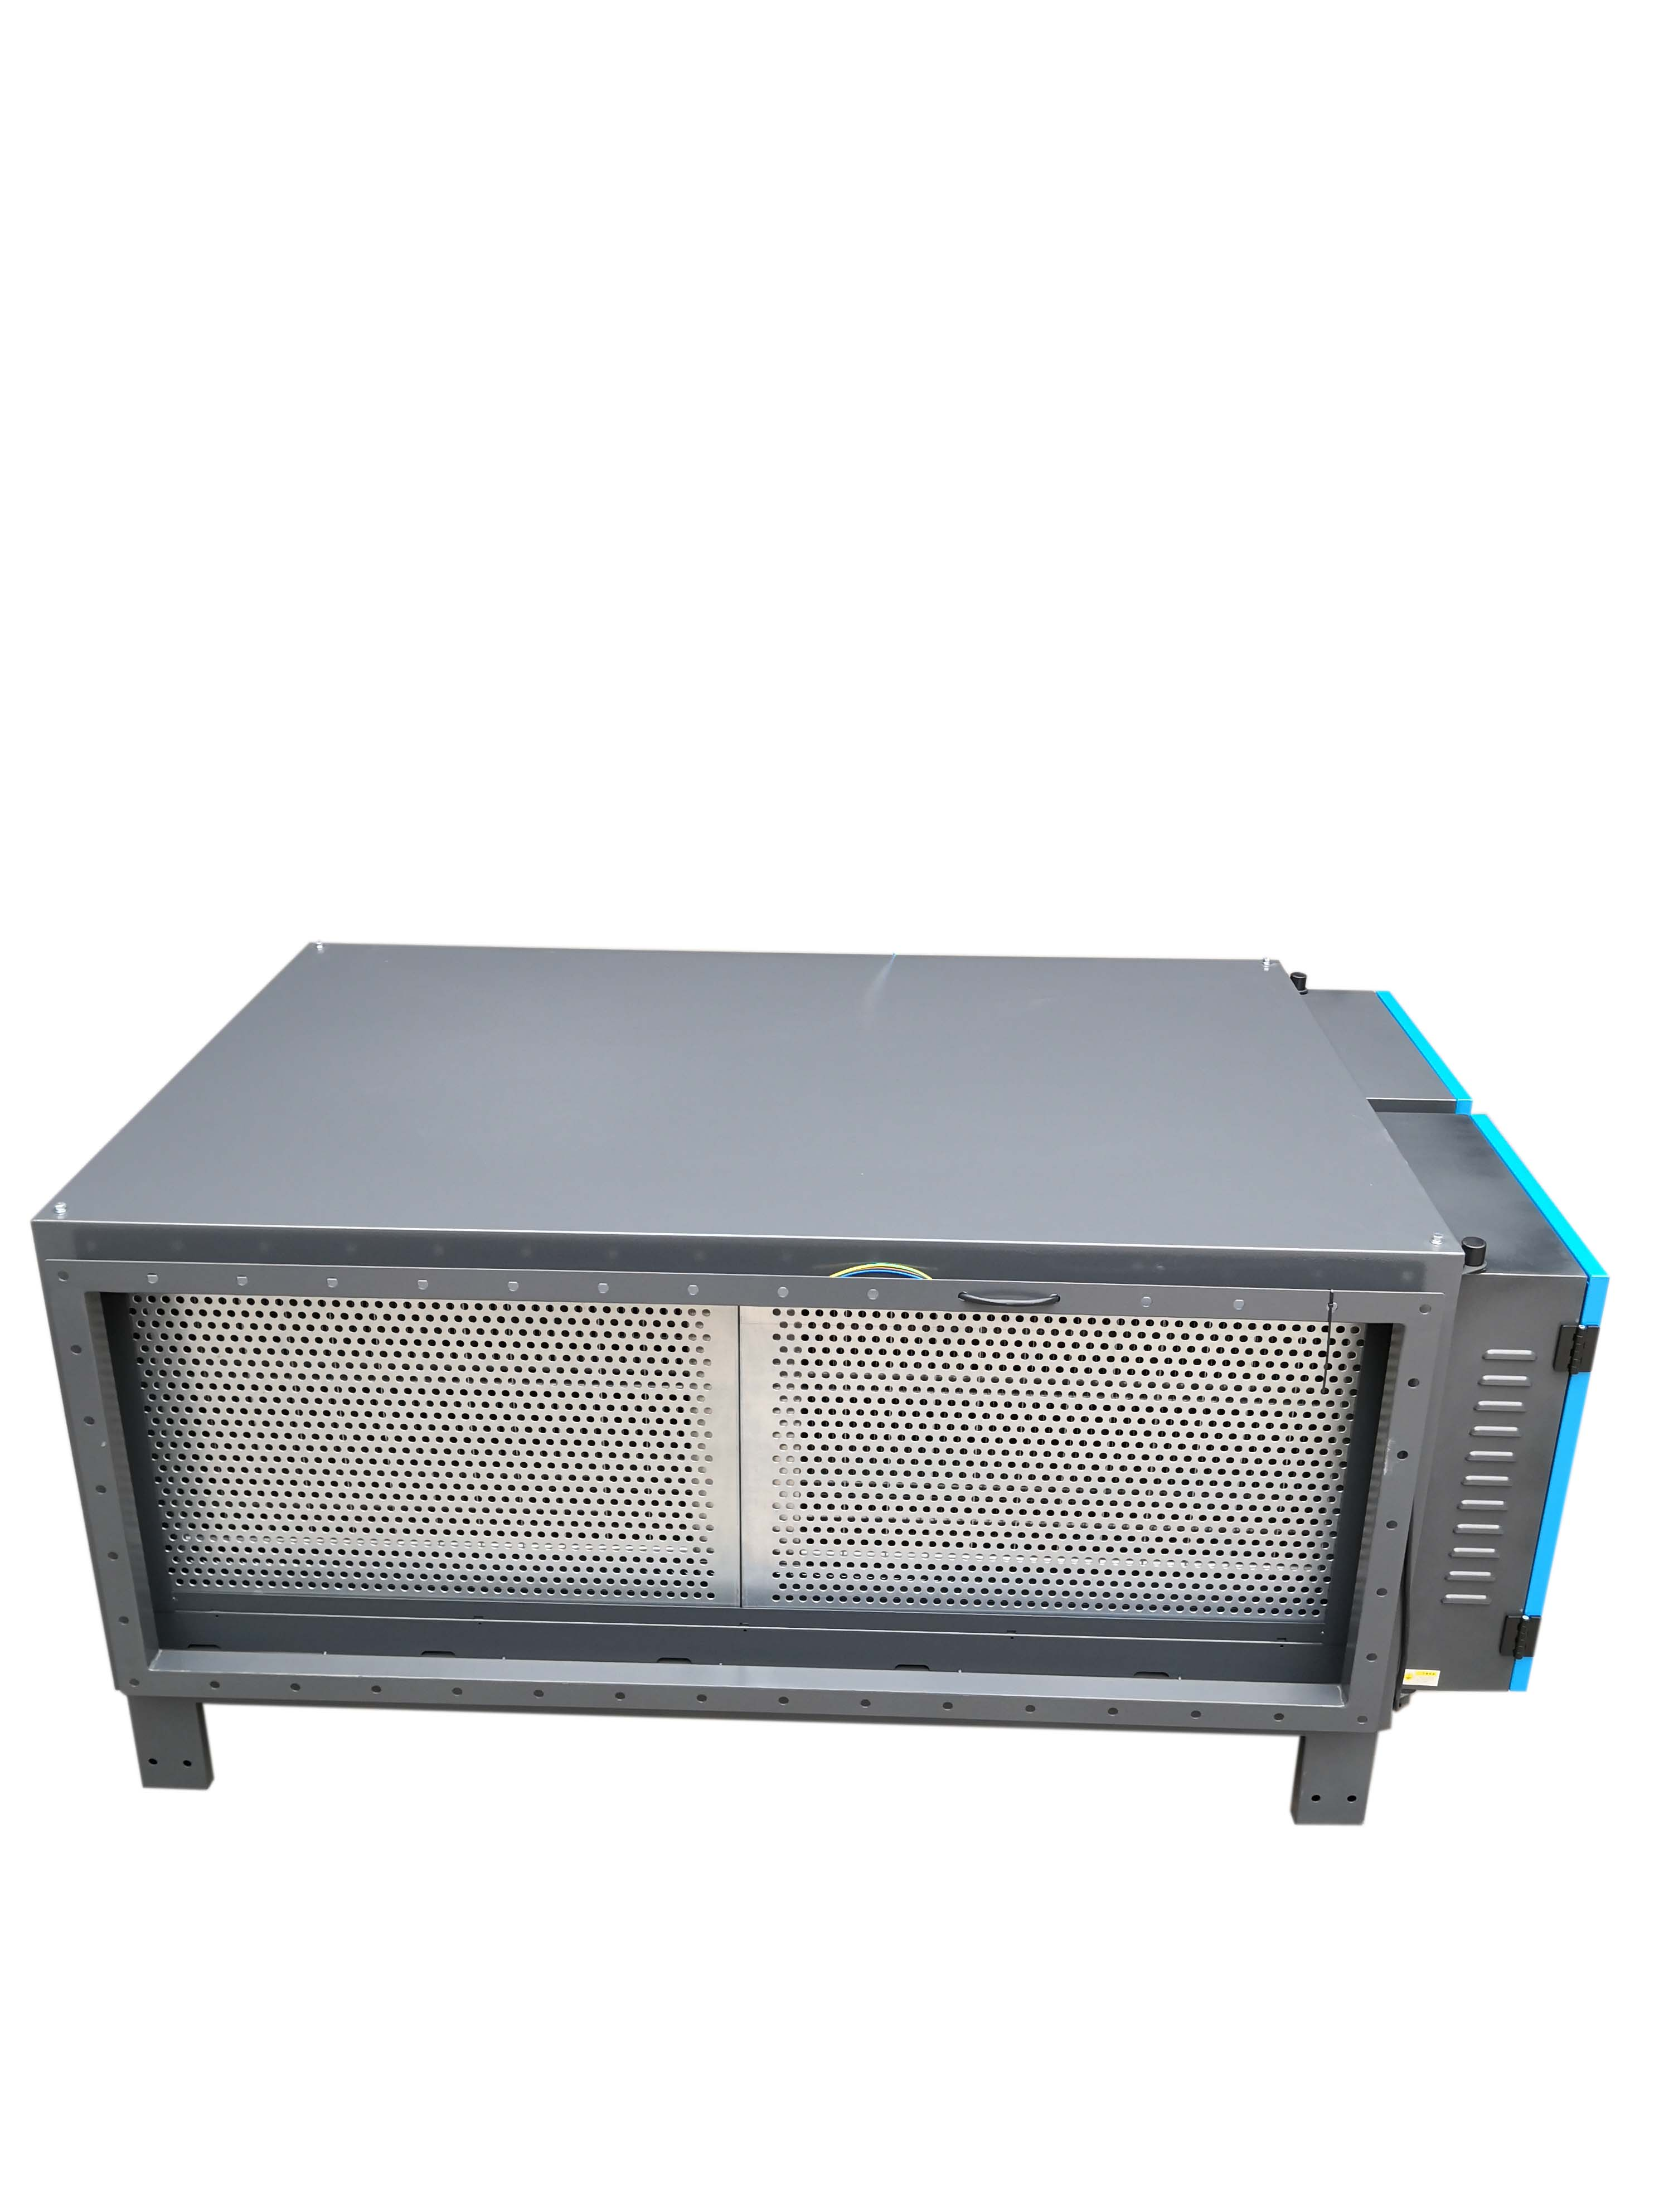 Hot selling Air Cleaner ionization air purifier from China